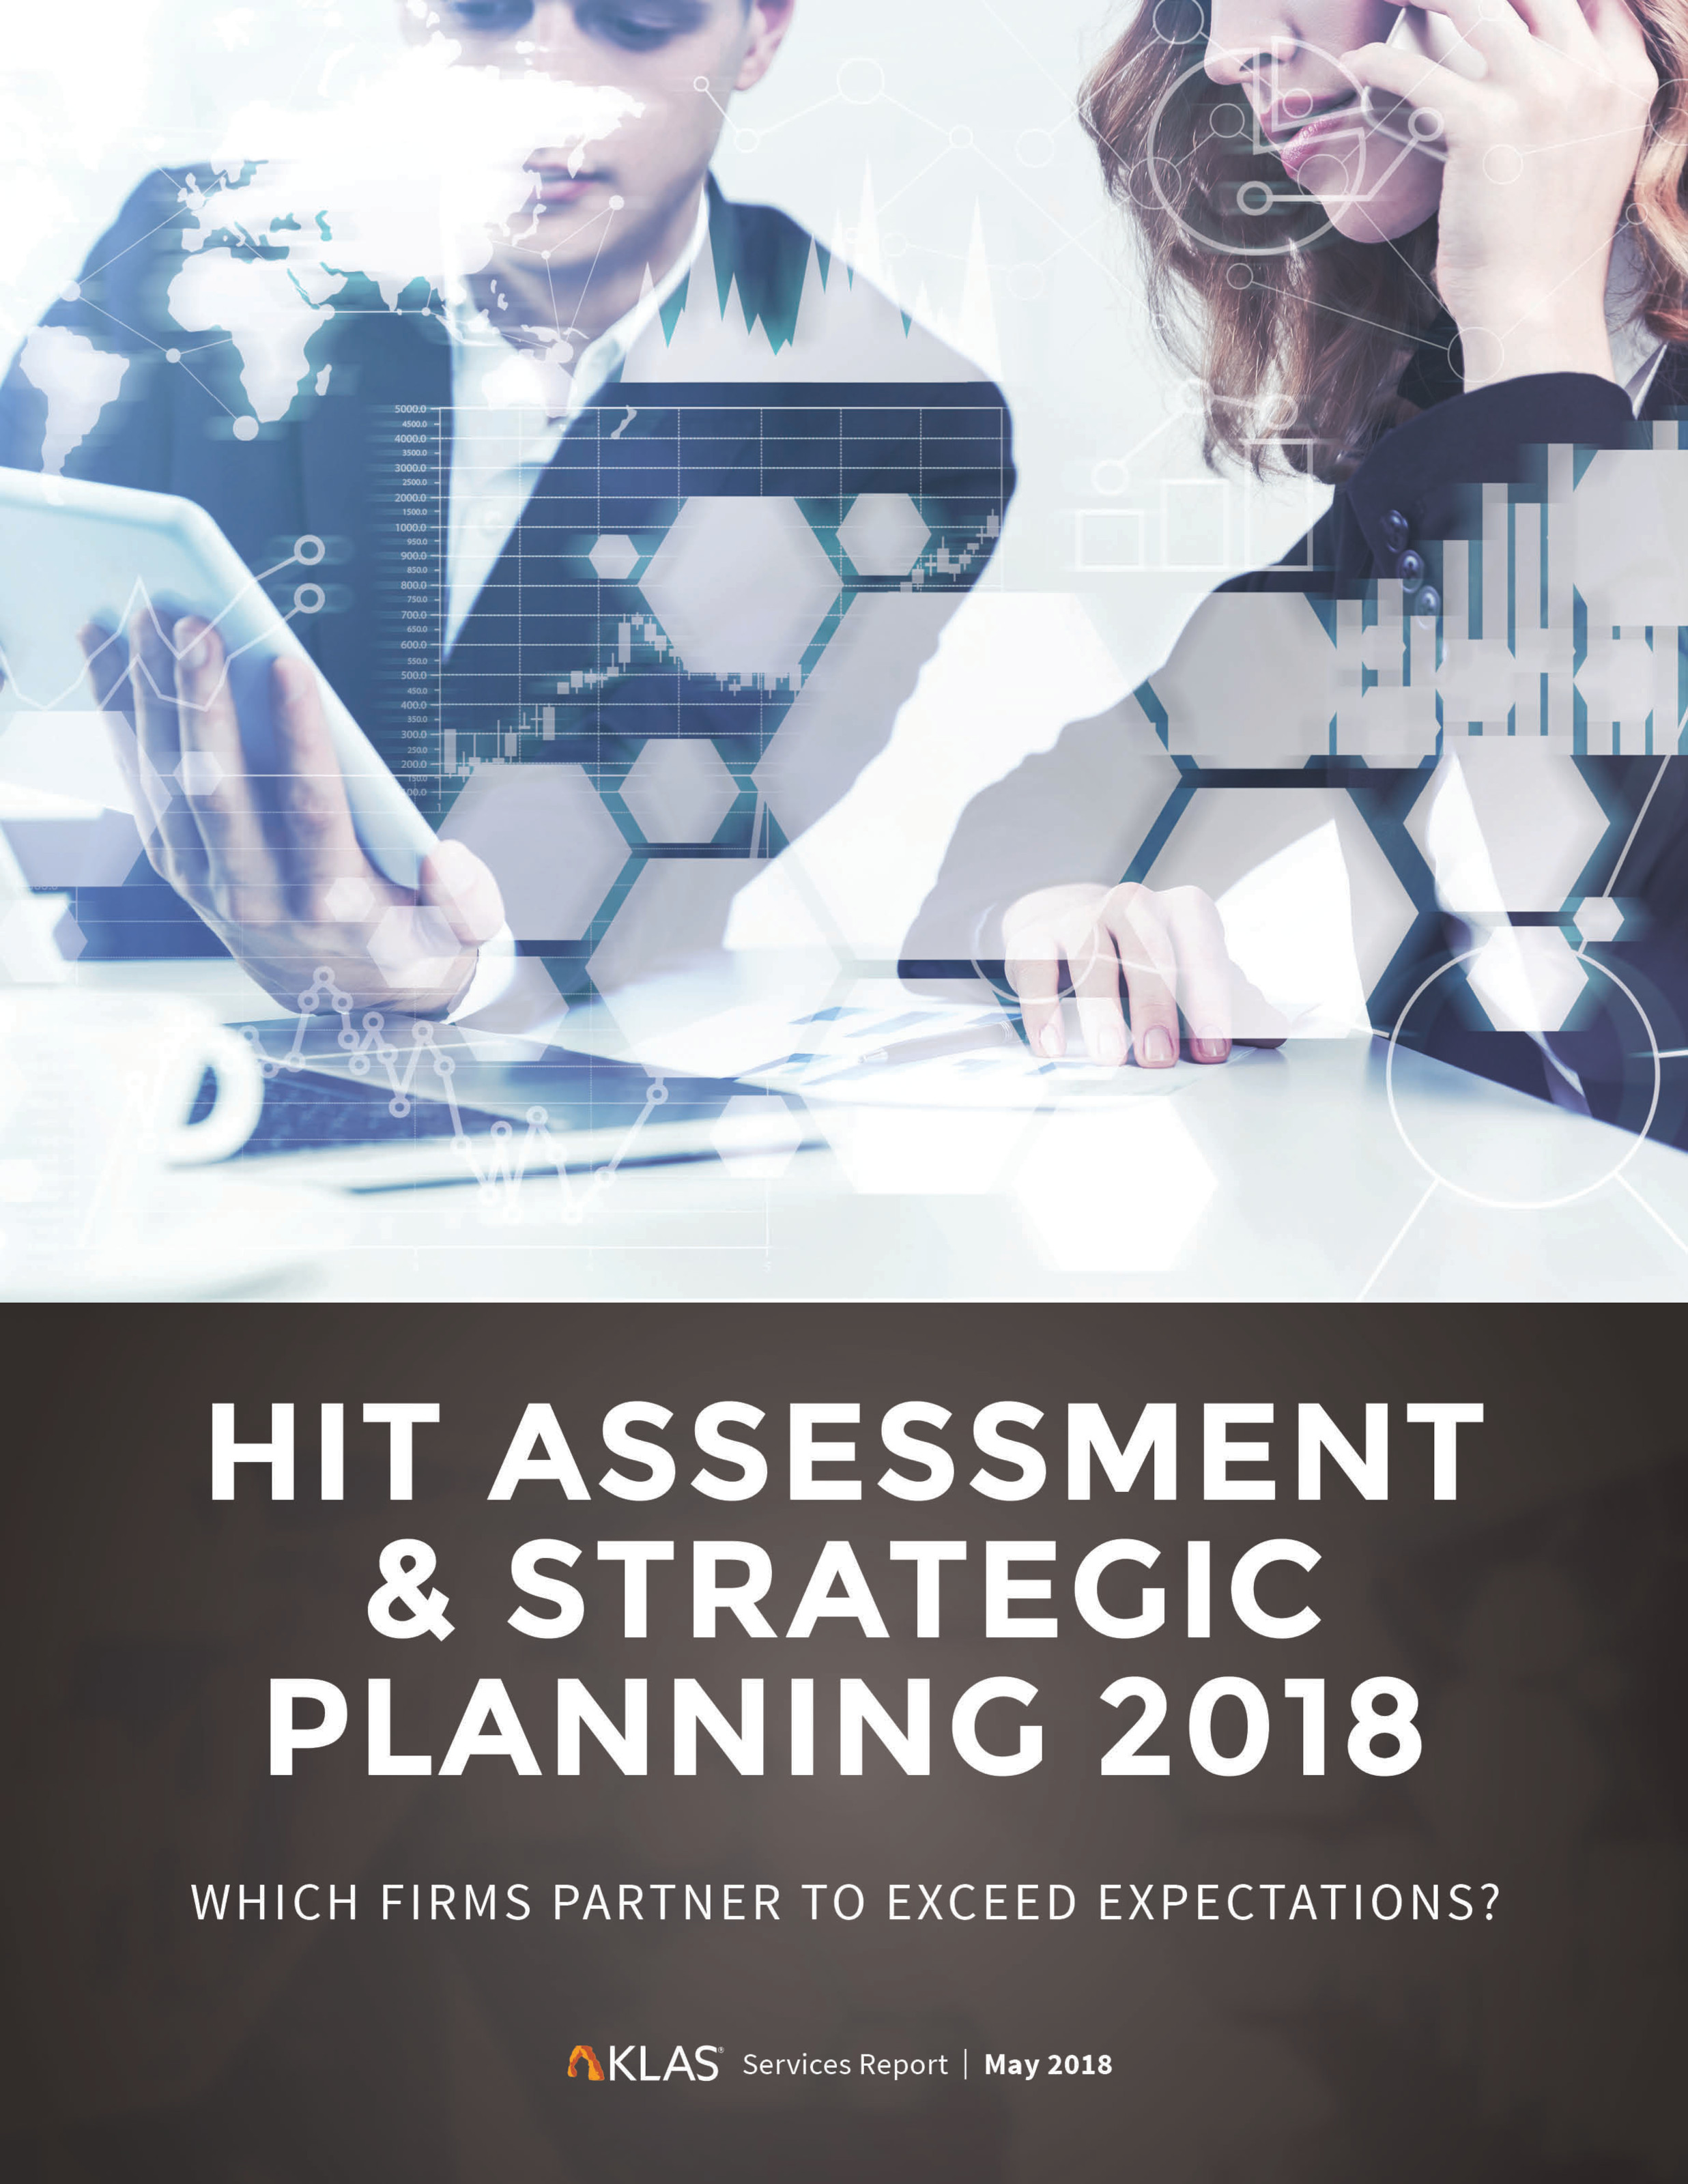 HIT Assessment & Strategic Planning